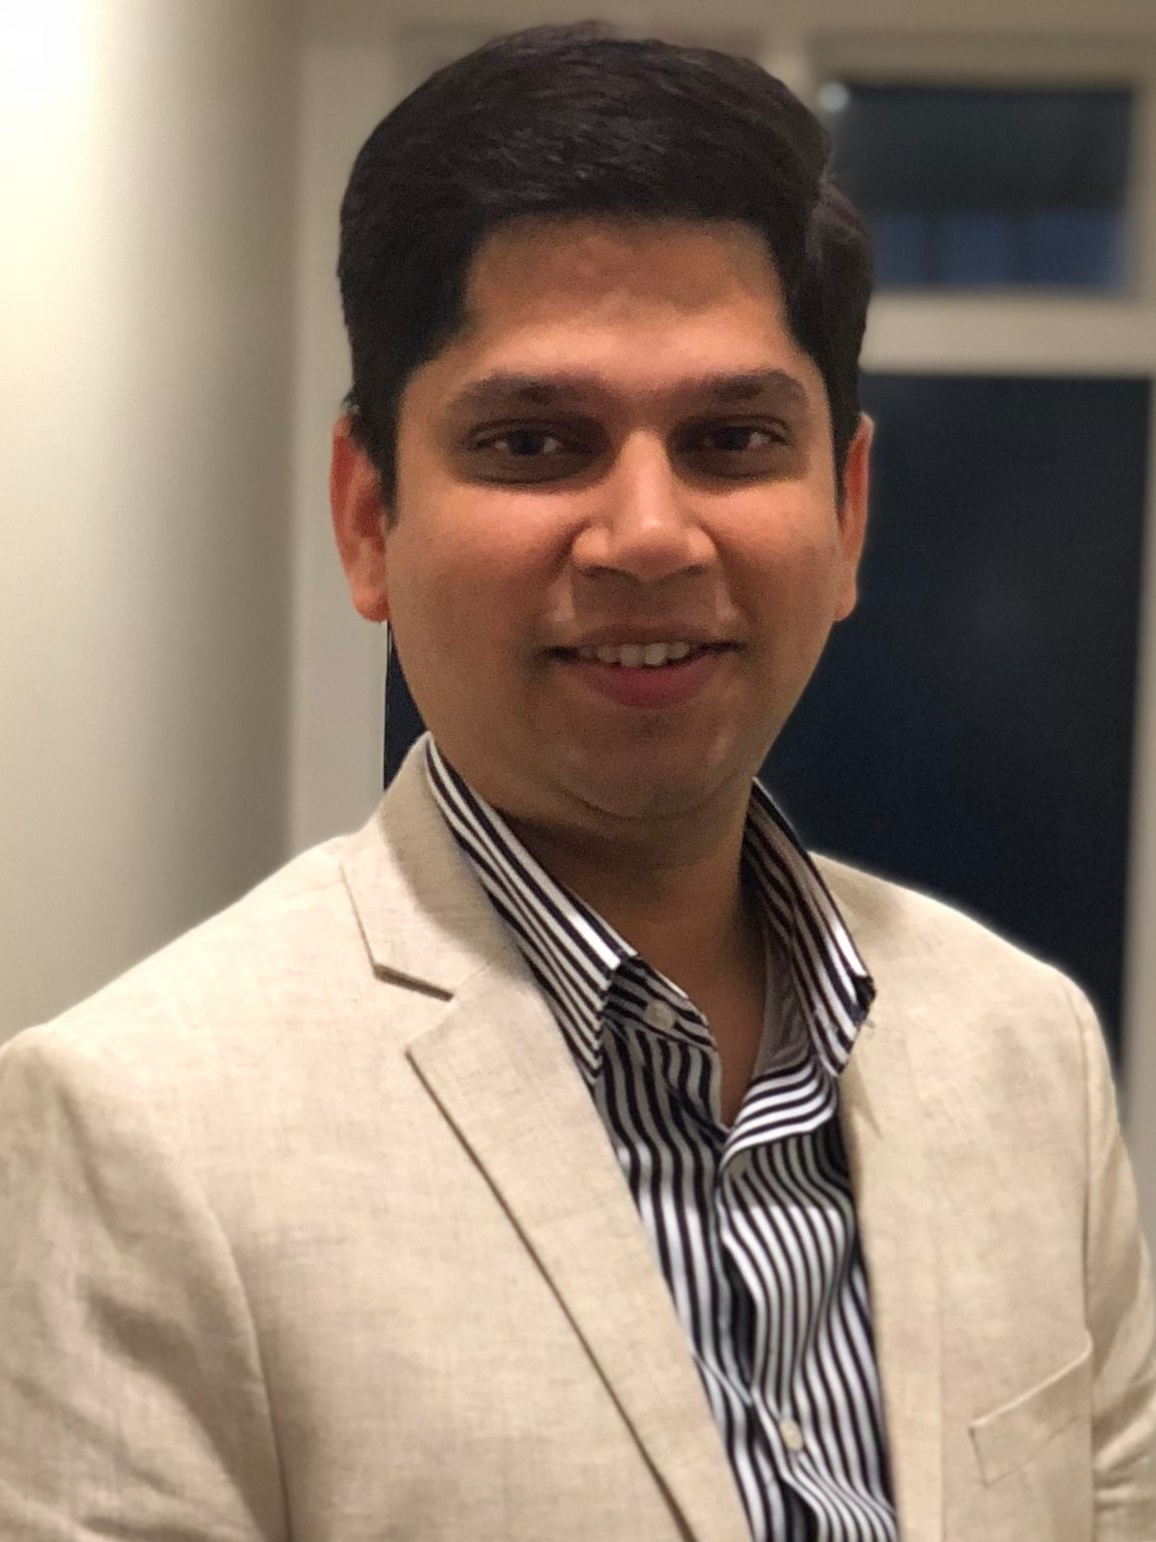 """While looking for options I was looking for something where I can study on weekend and online so I can save on my commuting time. Also I was looking for quality course material which will help me with my future job. IDMNZ was offering both so I decided to go with IDMNZ.""   - Rohan Satghare, Auckland"